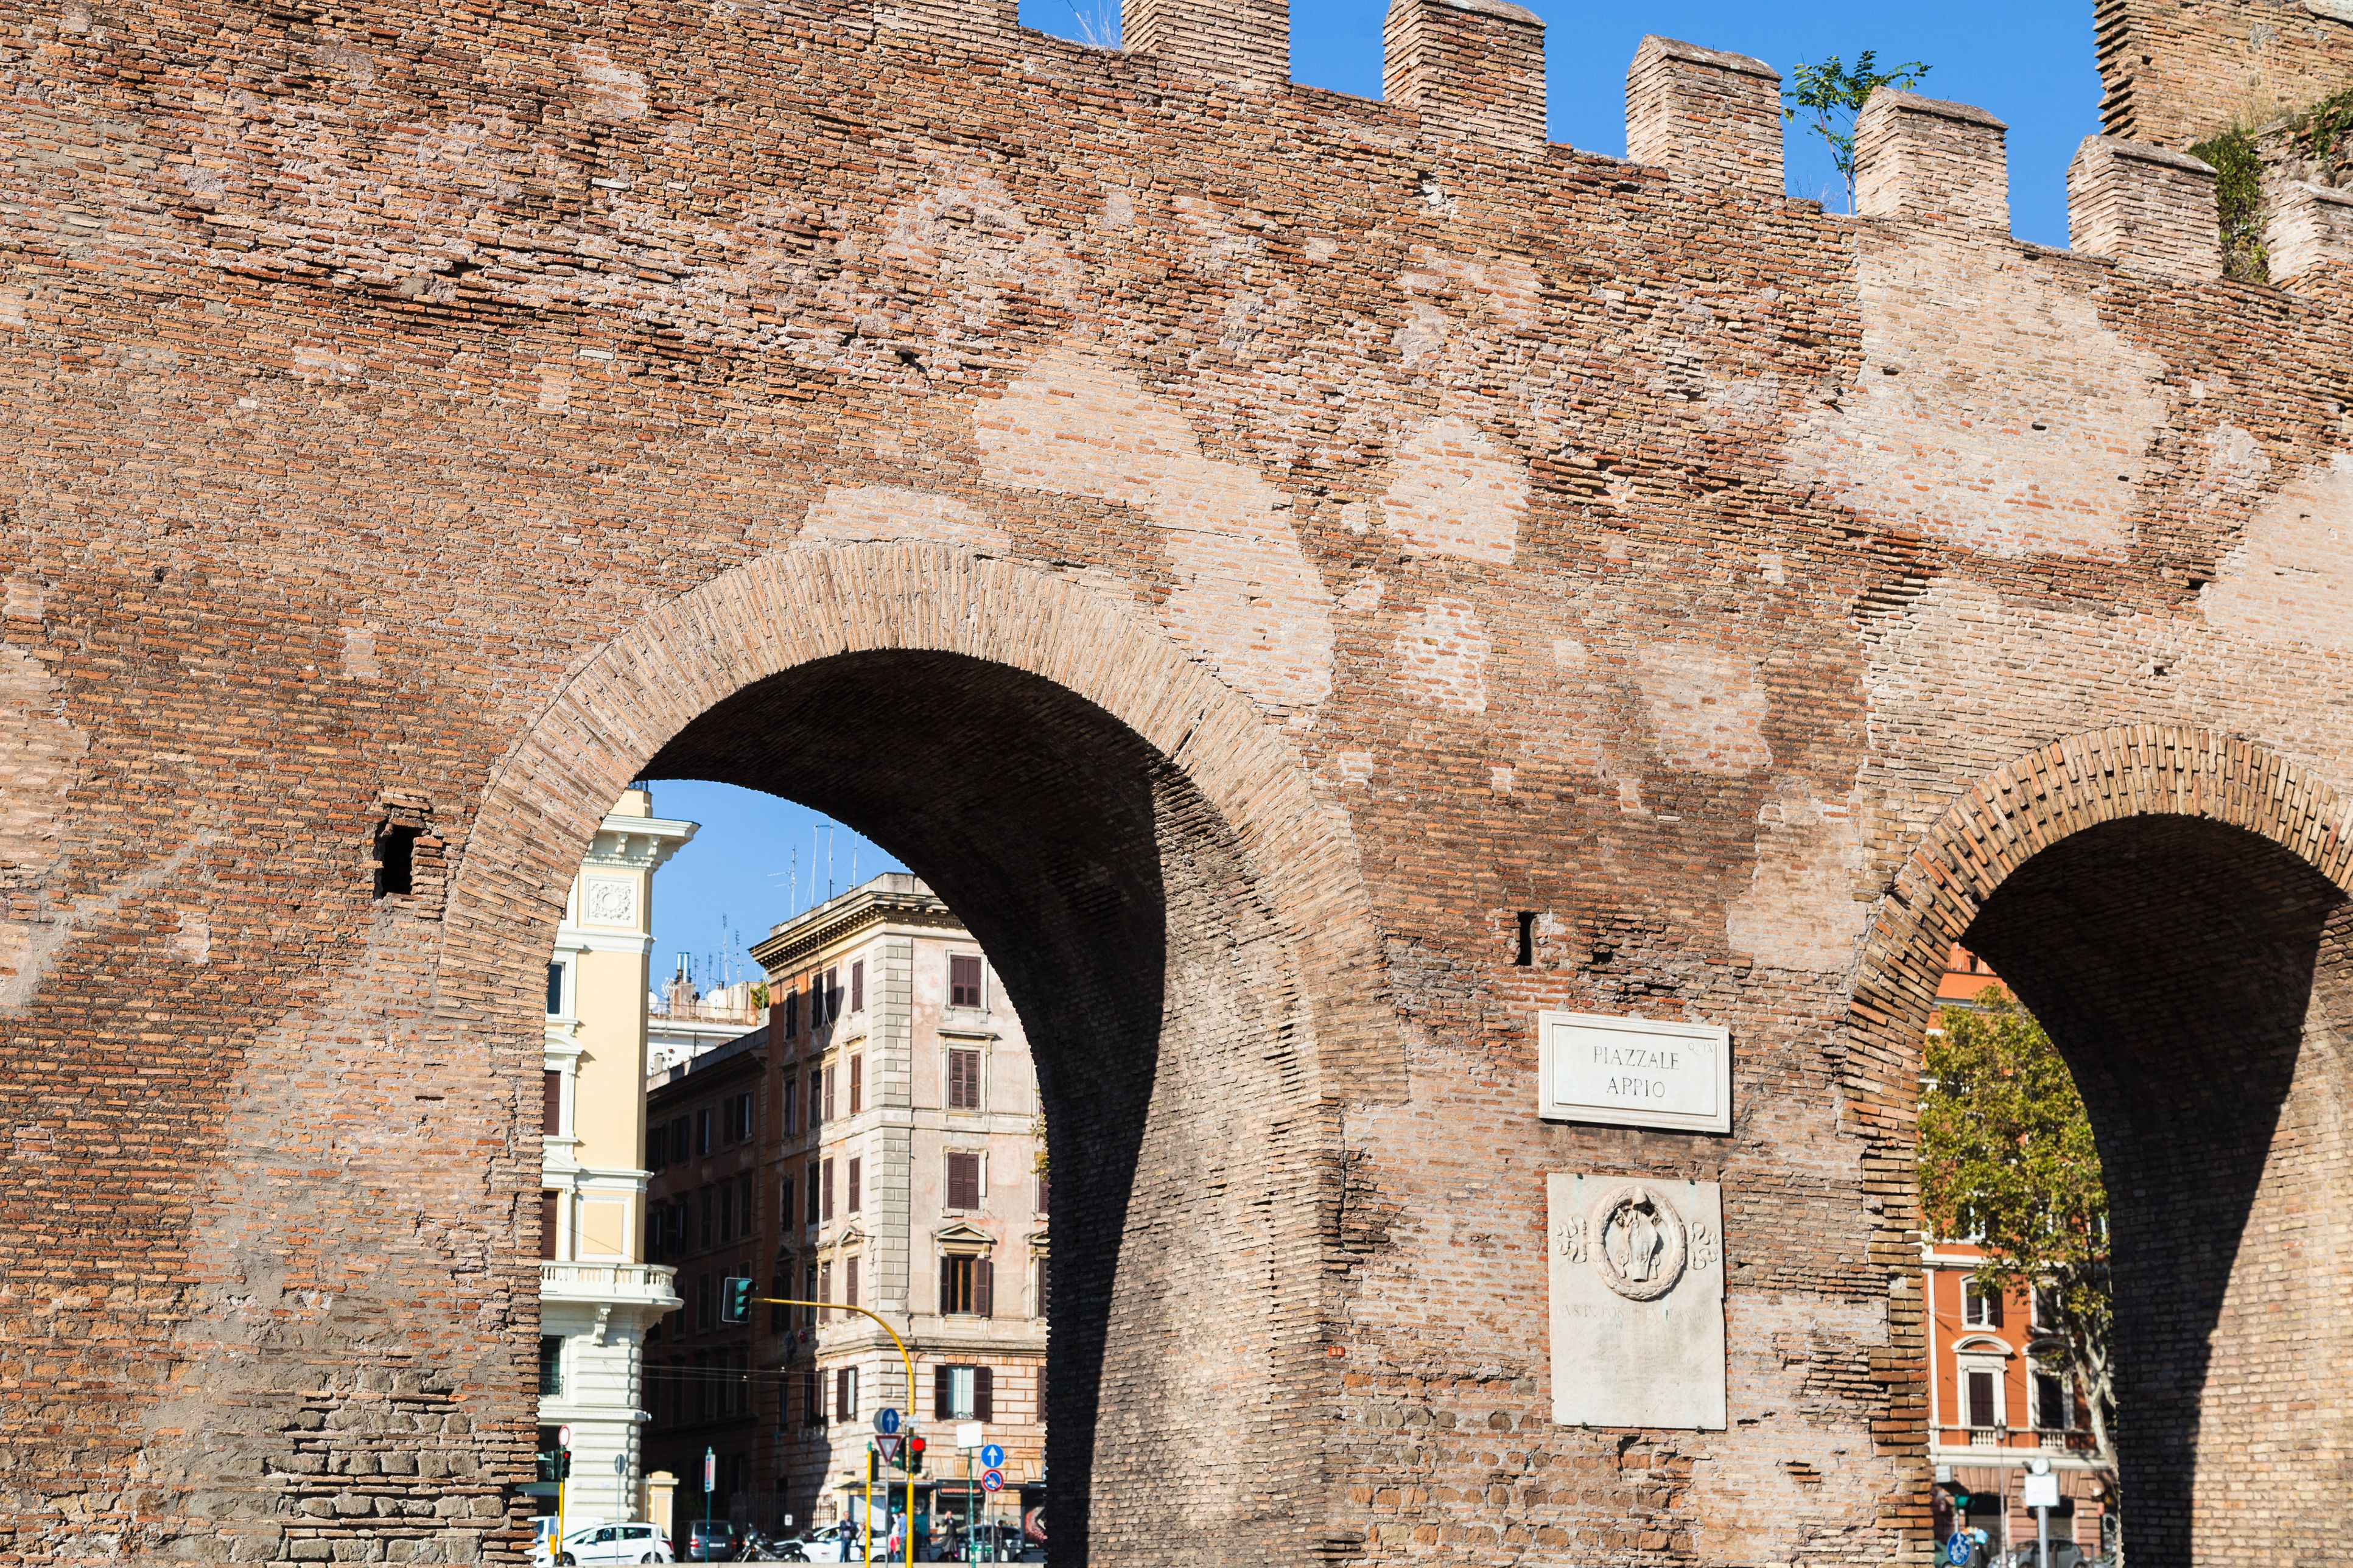 gate in ancient city Aurelian Wall in Rome